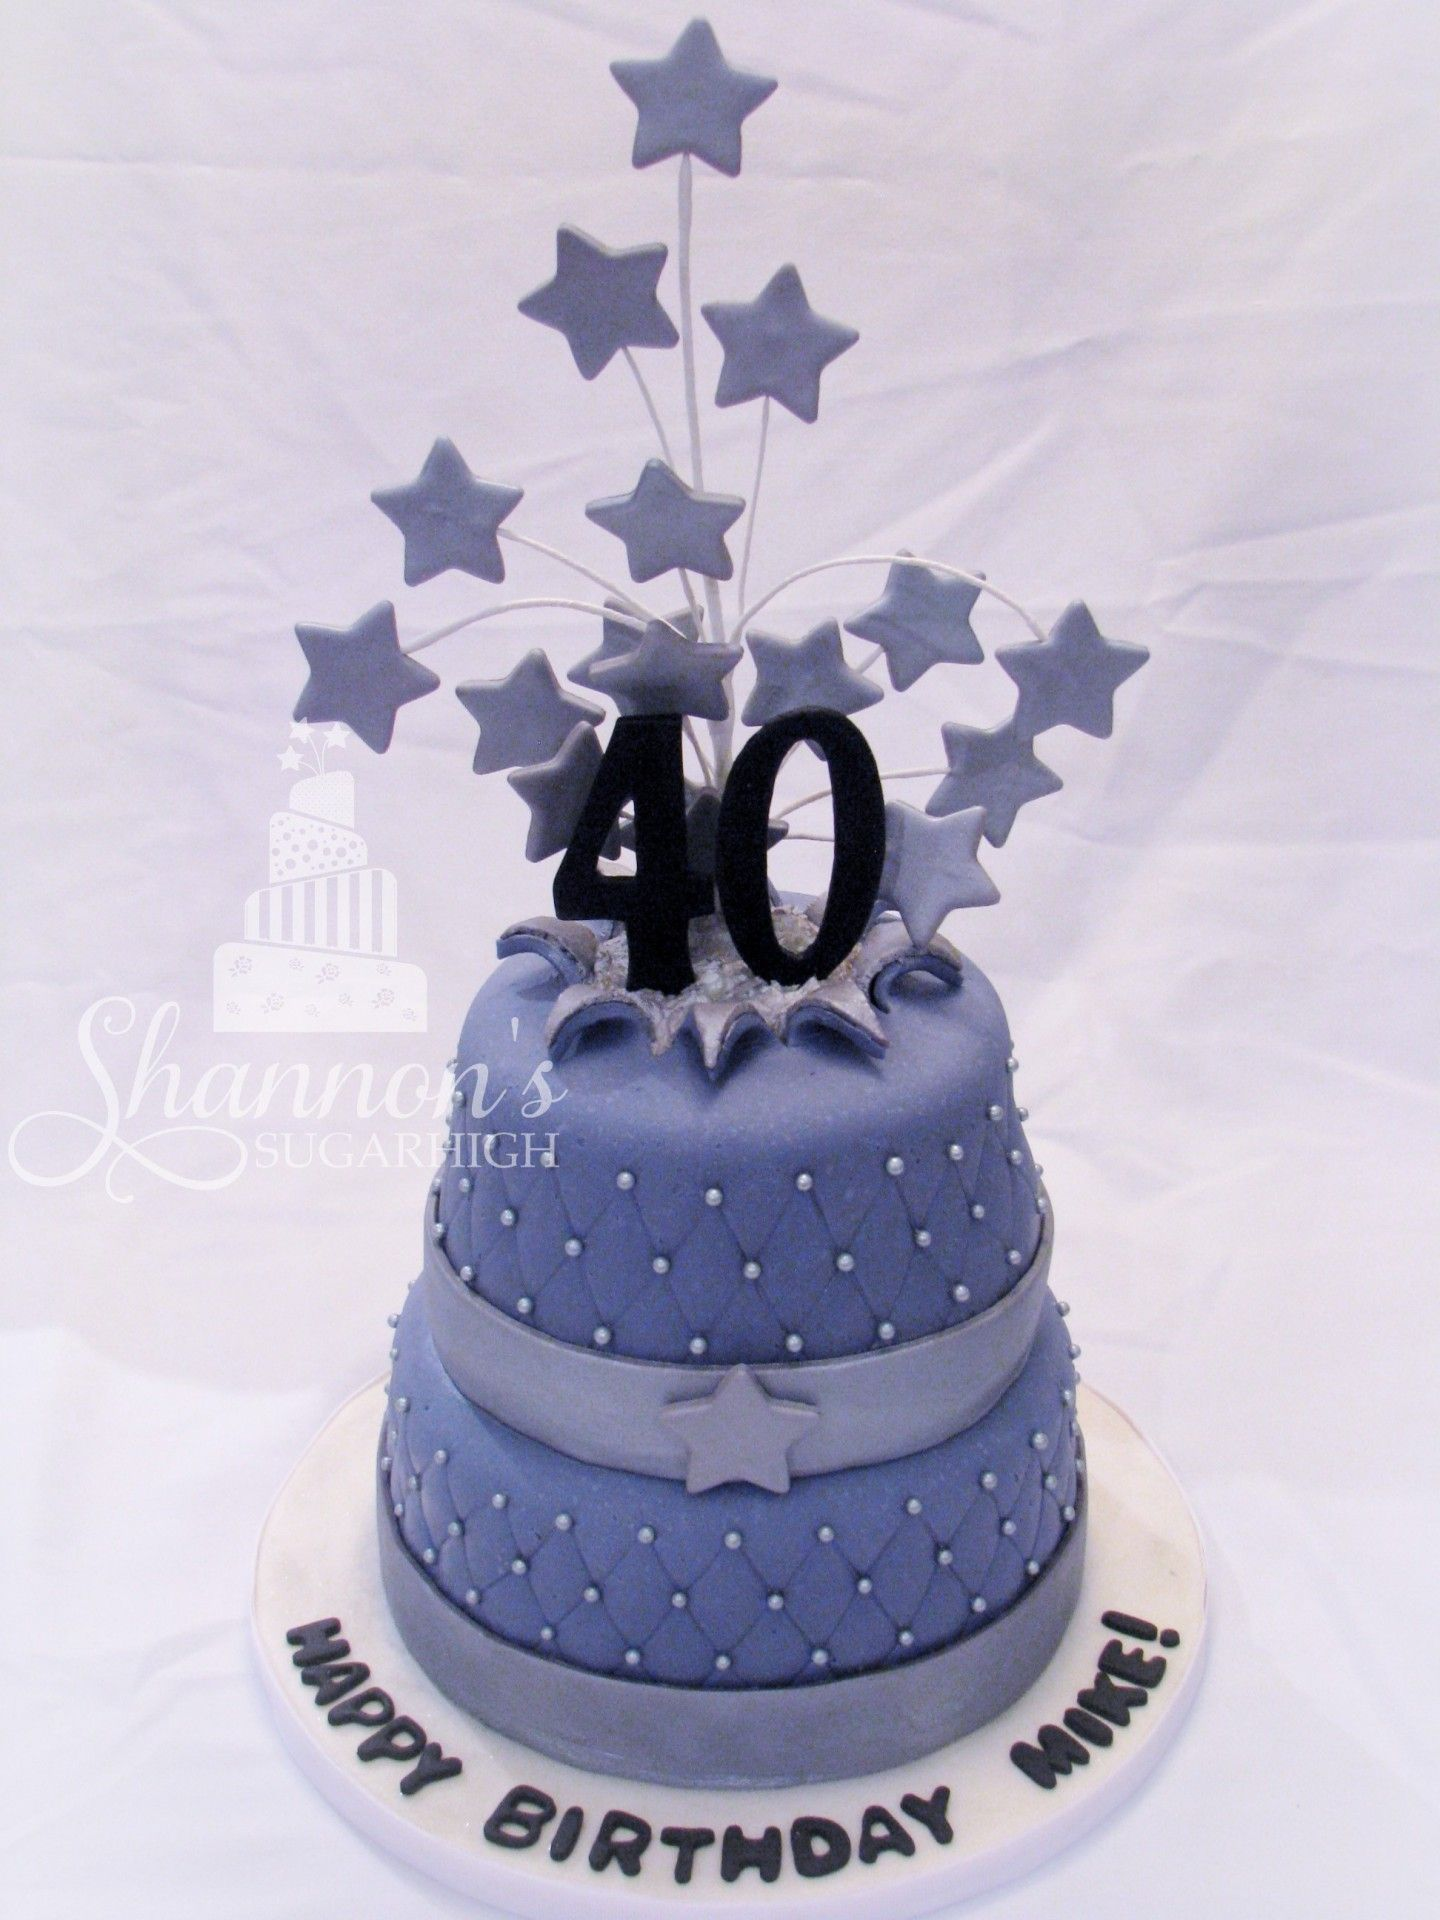 40th Birthday Cake 2 Tiered Fondant With Burst Effect And Quilting Is Lemon Frosted Buttercream Covered In